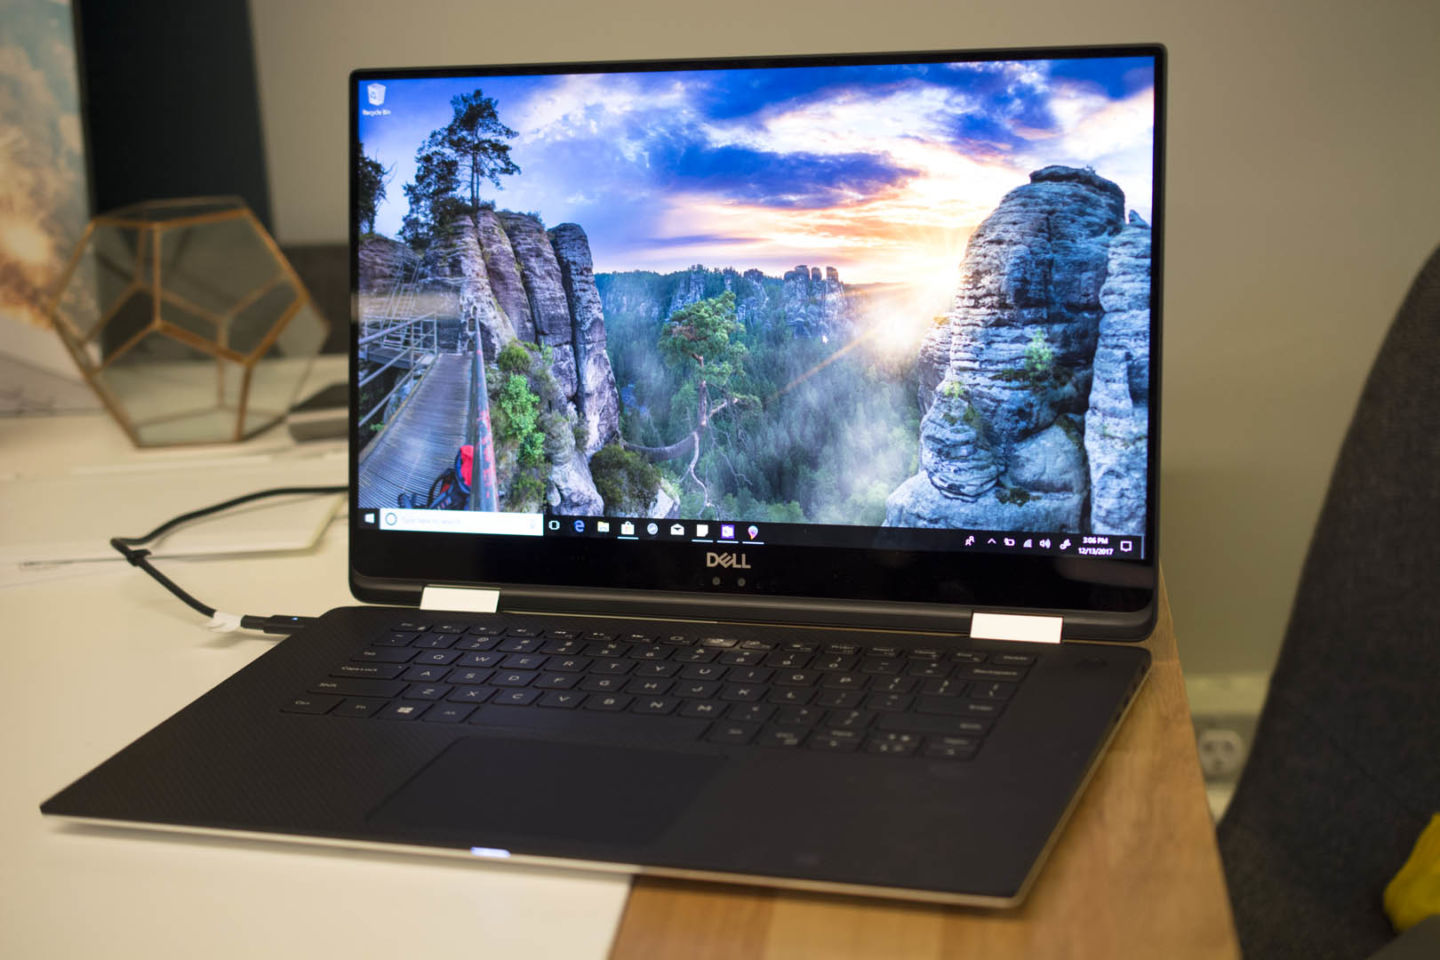 dell xps 15 9560 review 2018